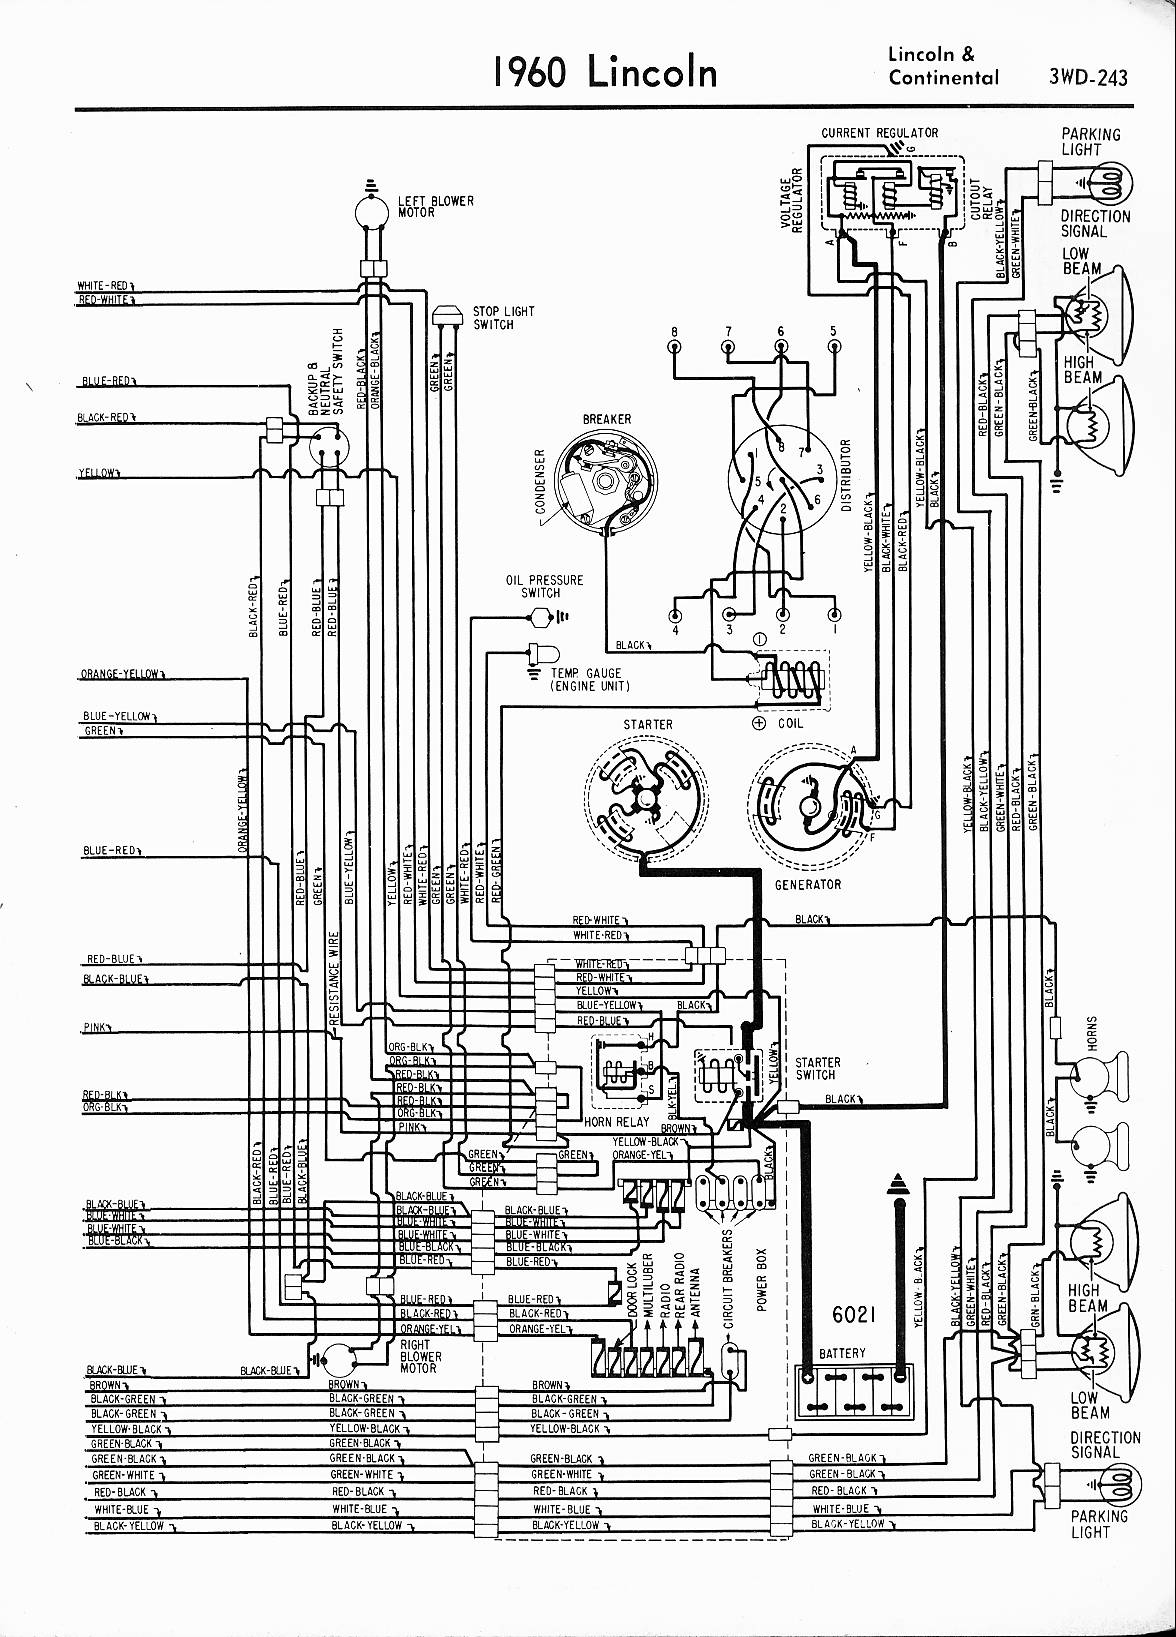 2005 Lincoln Navigator Fuse Box Wiring Library Ls V6 Engine Diagram 1960 Schematics Diagrams U2022 Rh Schoosretailstores Com 2001